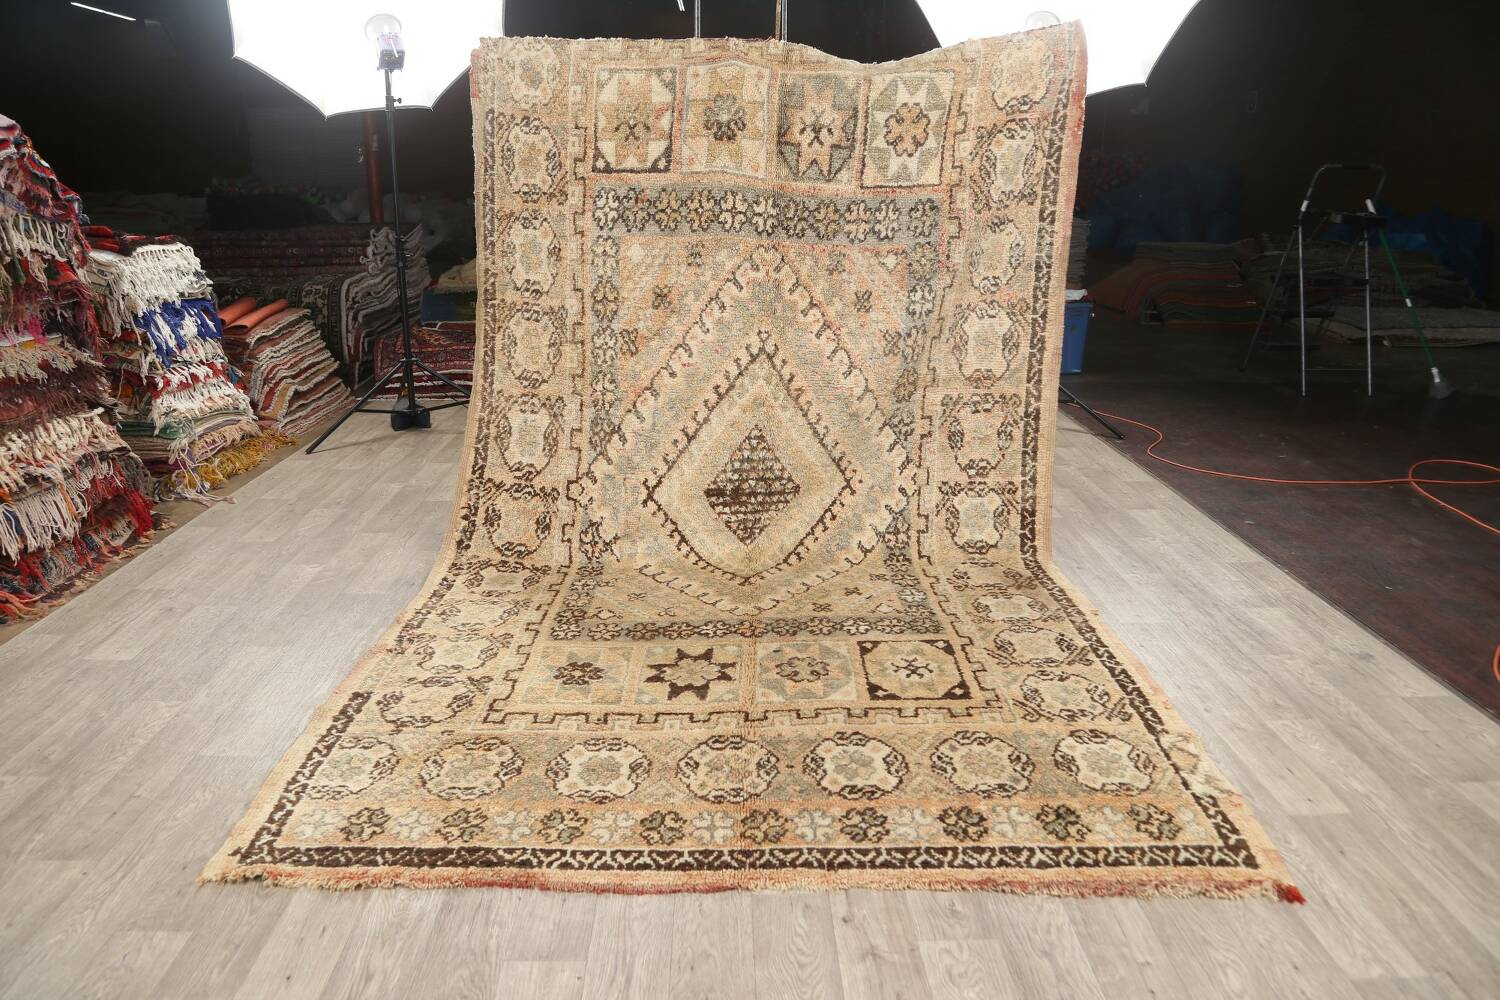 Antique Tribal Moroccan Oriental Area Rug 7x11 image 14